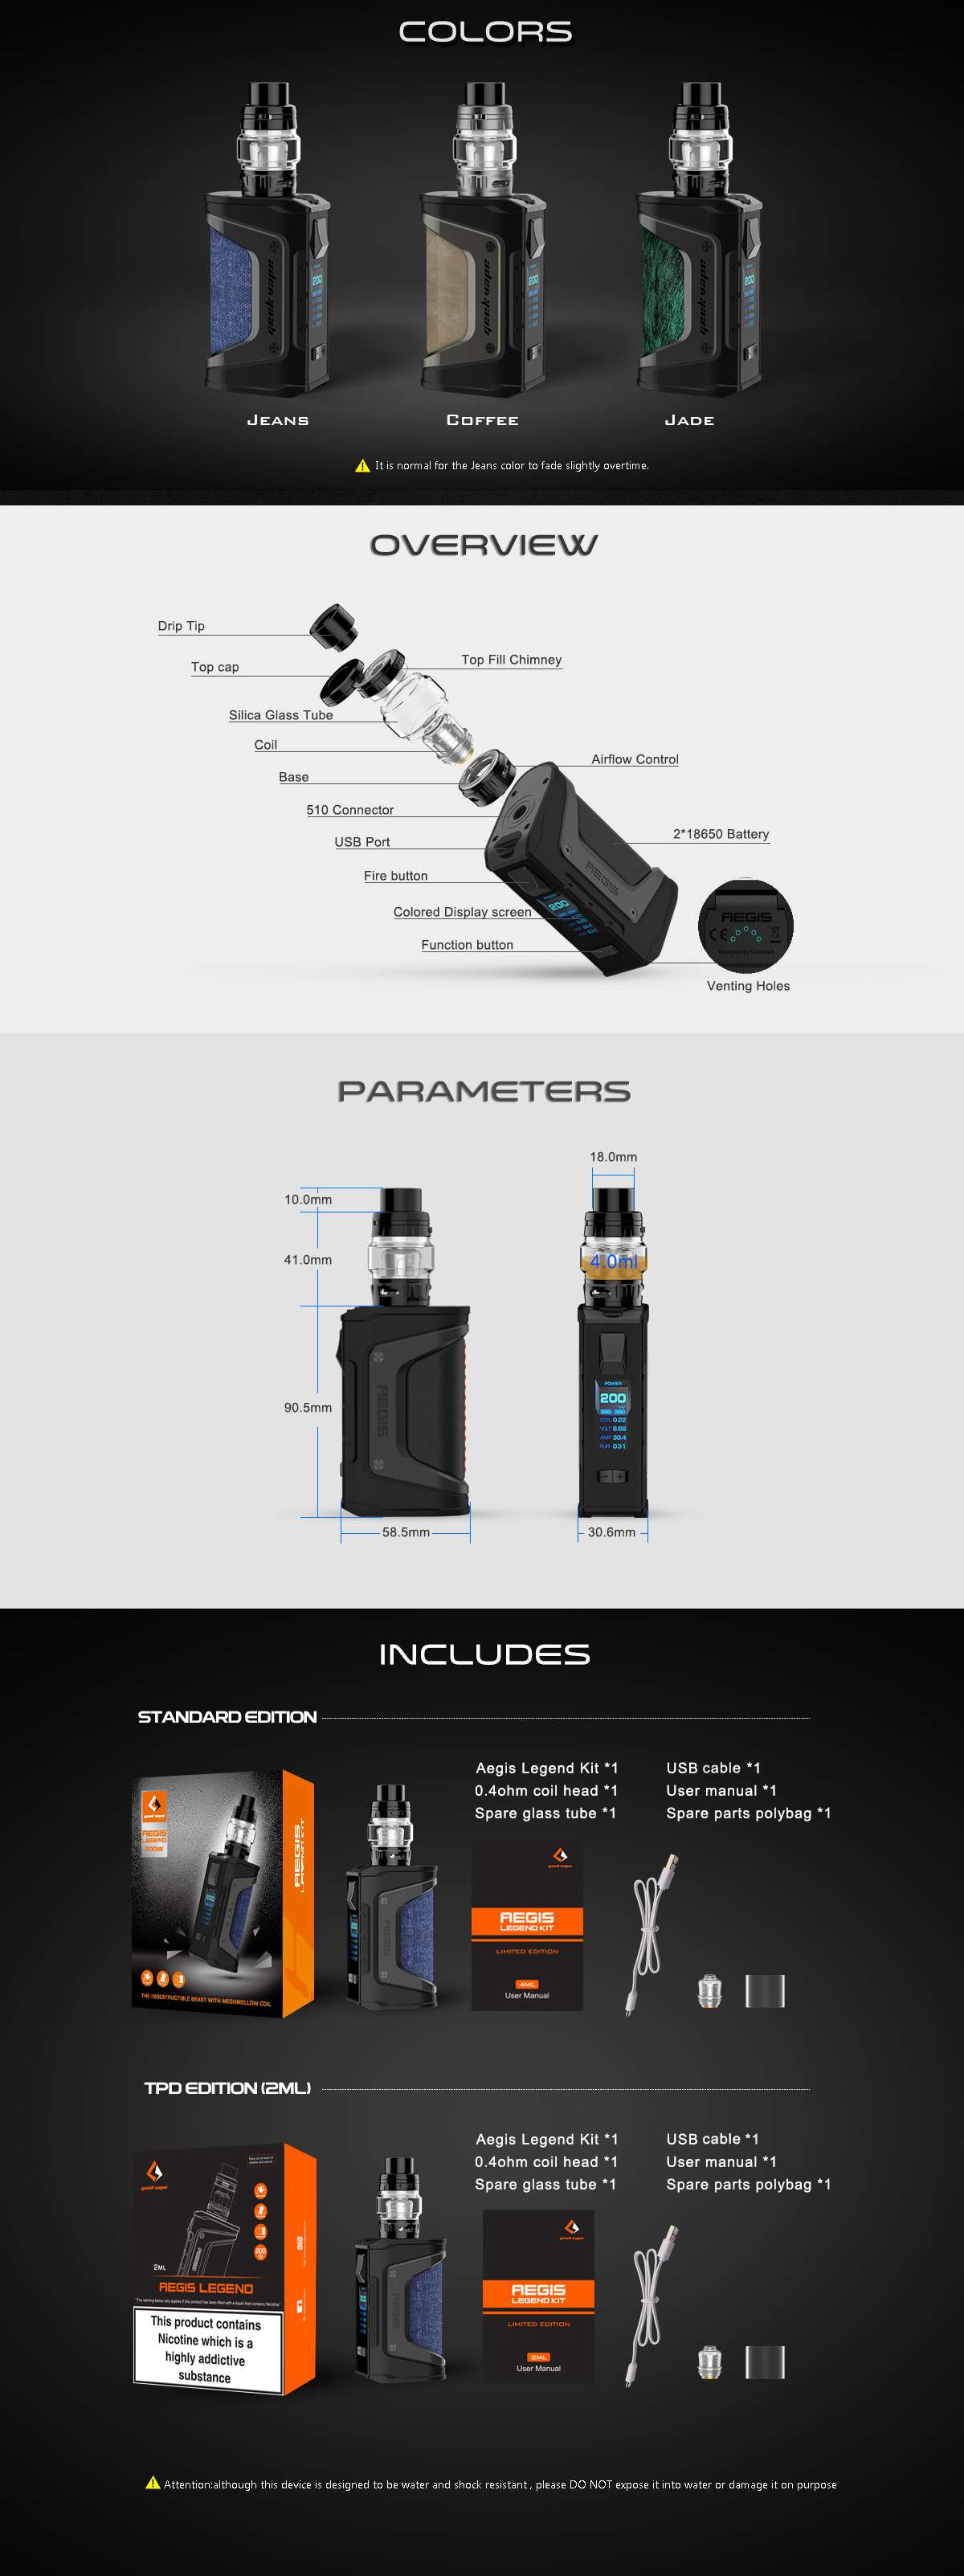 aegis legend kit 2019 mới vape